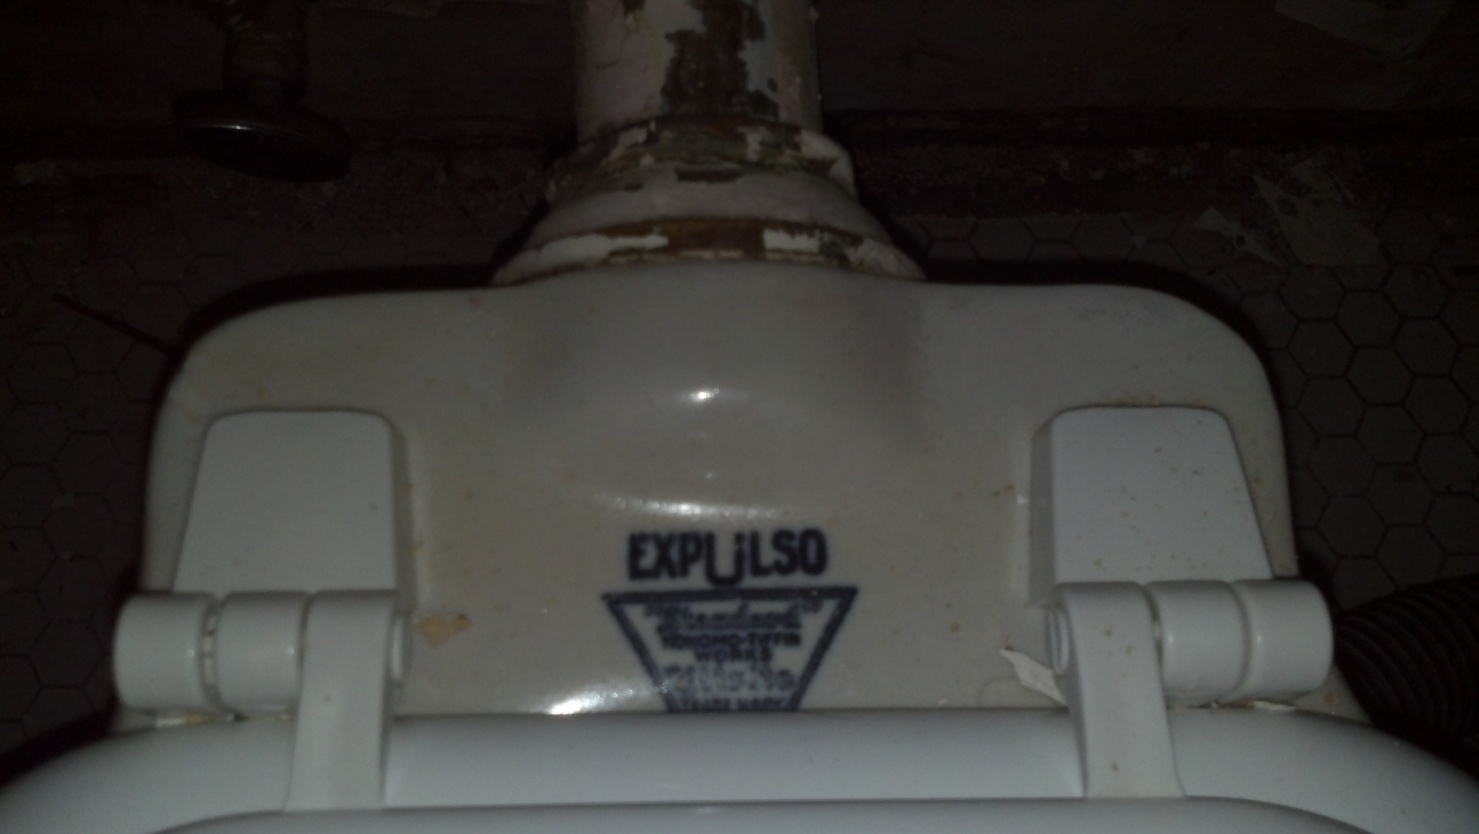 "Old ""Expulso"" Toilet, never run into one quite like this before.-2012-05-01_16-23-34_45.jpg"